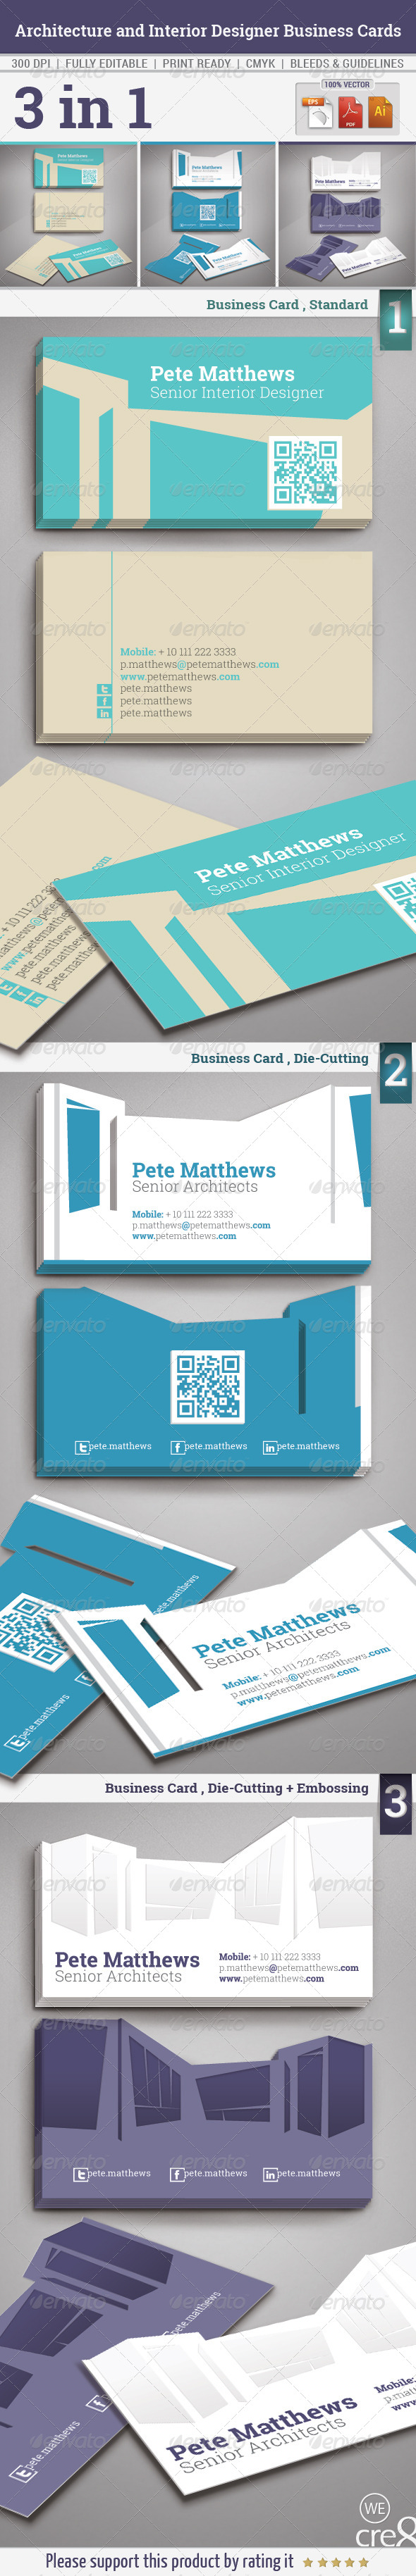 GraphicRiver Architecture and Interior Designer Business Cards 5856984